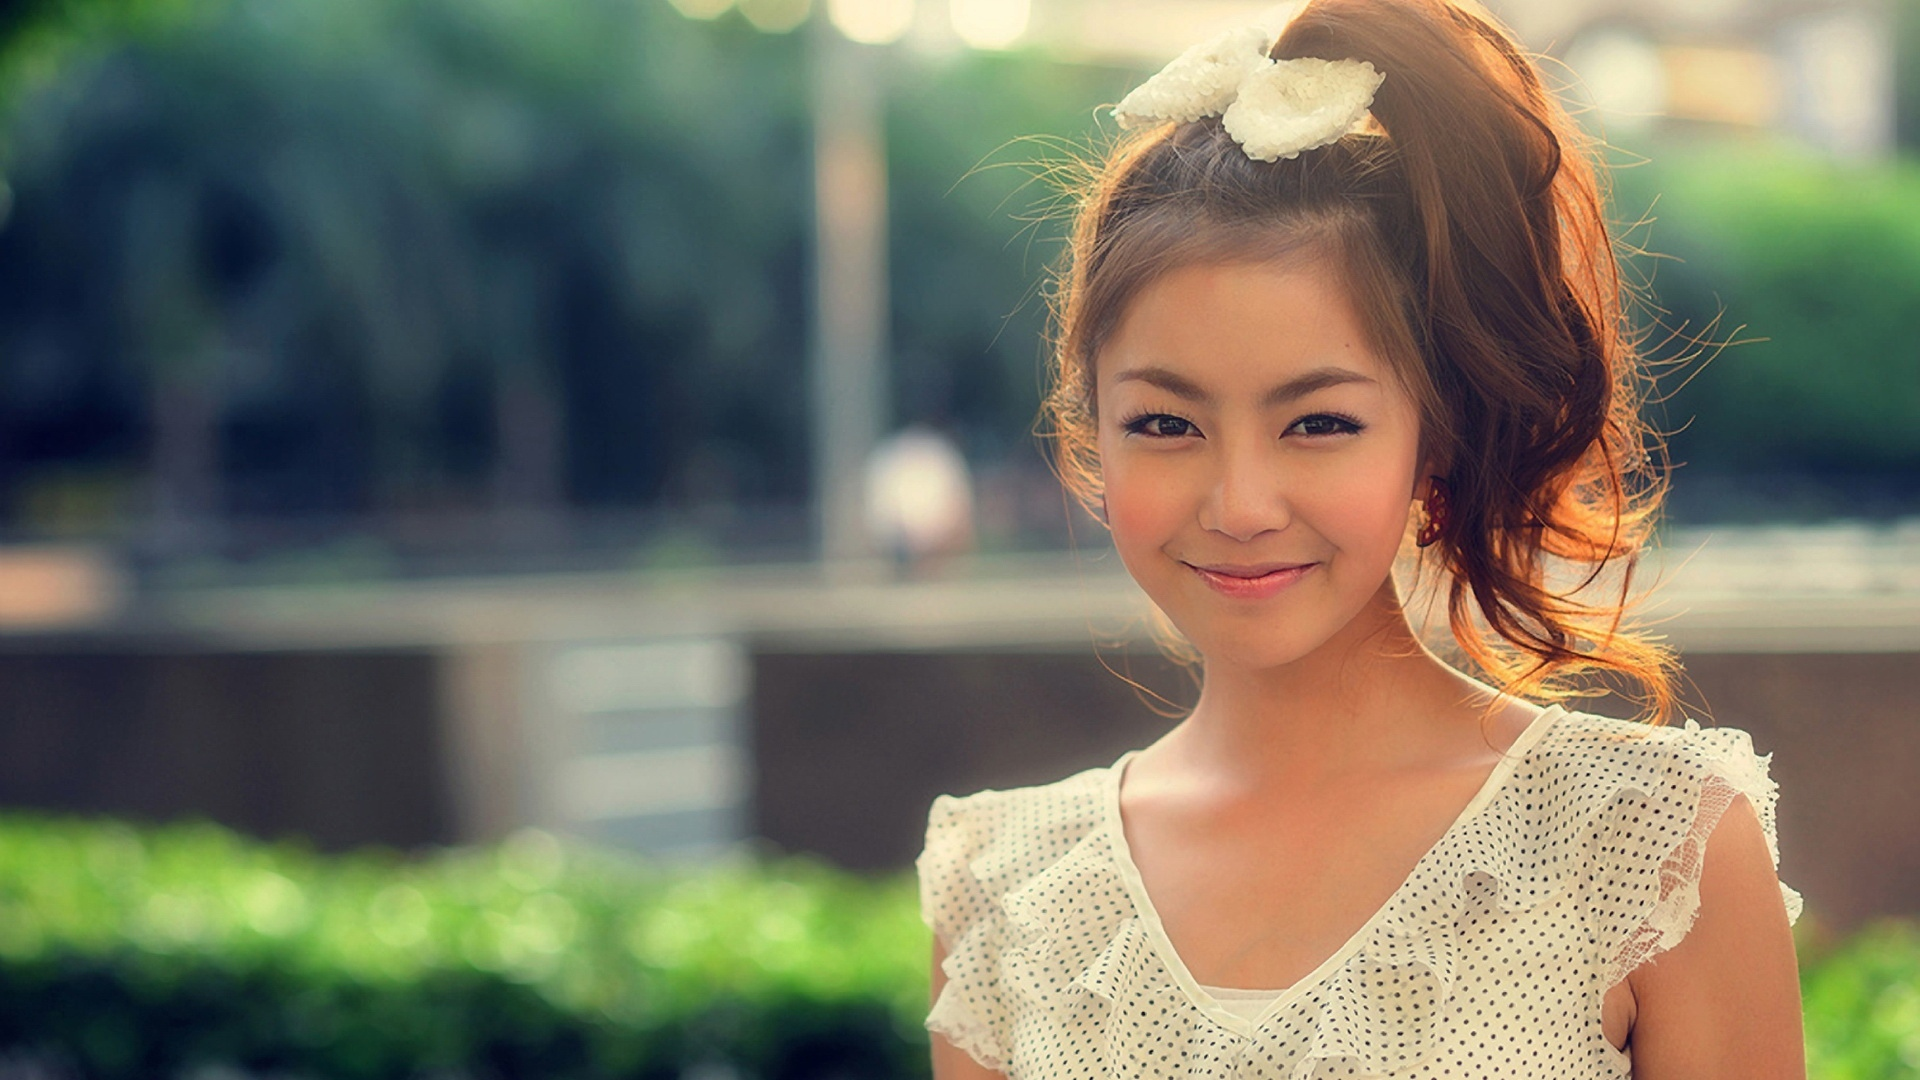 Download wallpaper 1920x1080 asian smile face full hd 1080p hd get the latest asian smile face news pictures and videos and learn all about asian smile face from wallpapers4u your wallpaper news source voltagebd Images